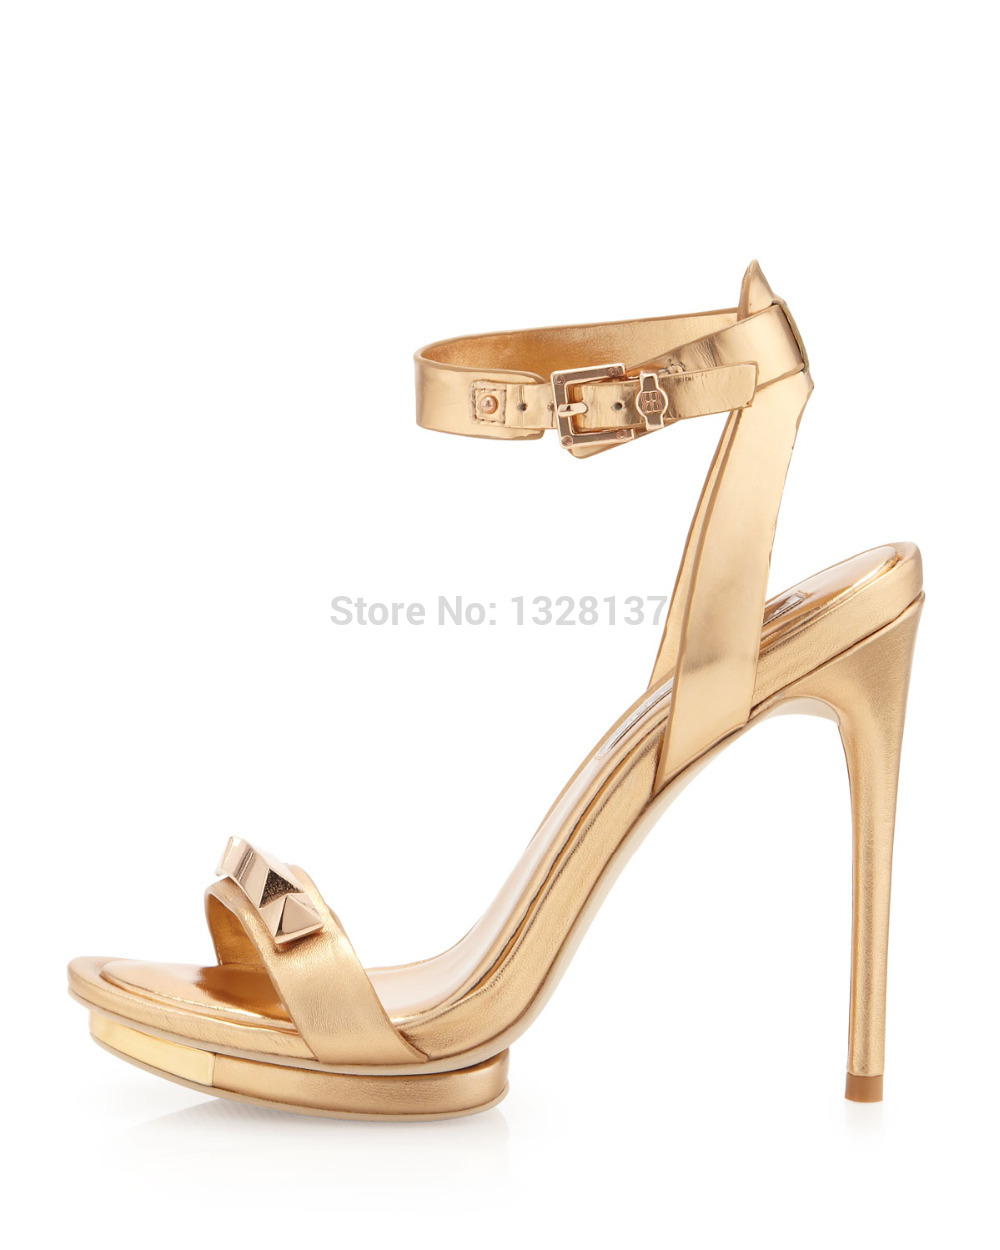 Compare Prices on Cheap Gold High Heels- Online Shopping/Buy Low